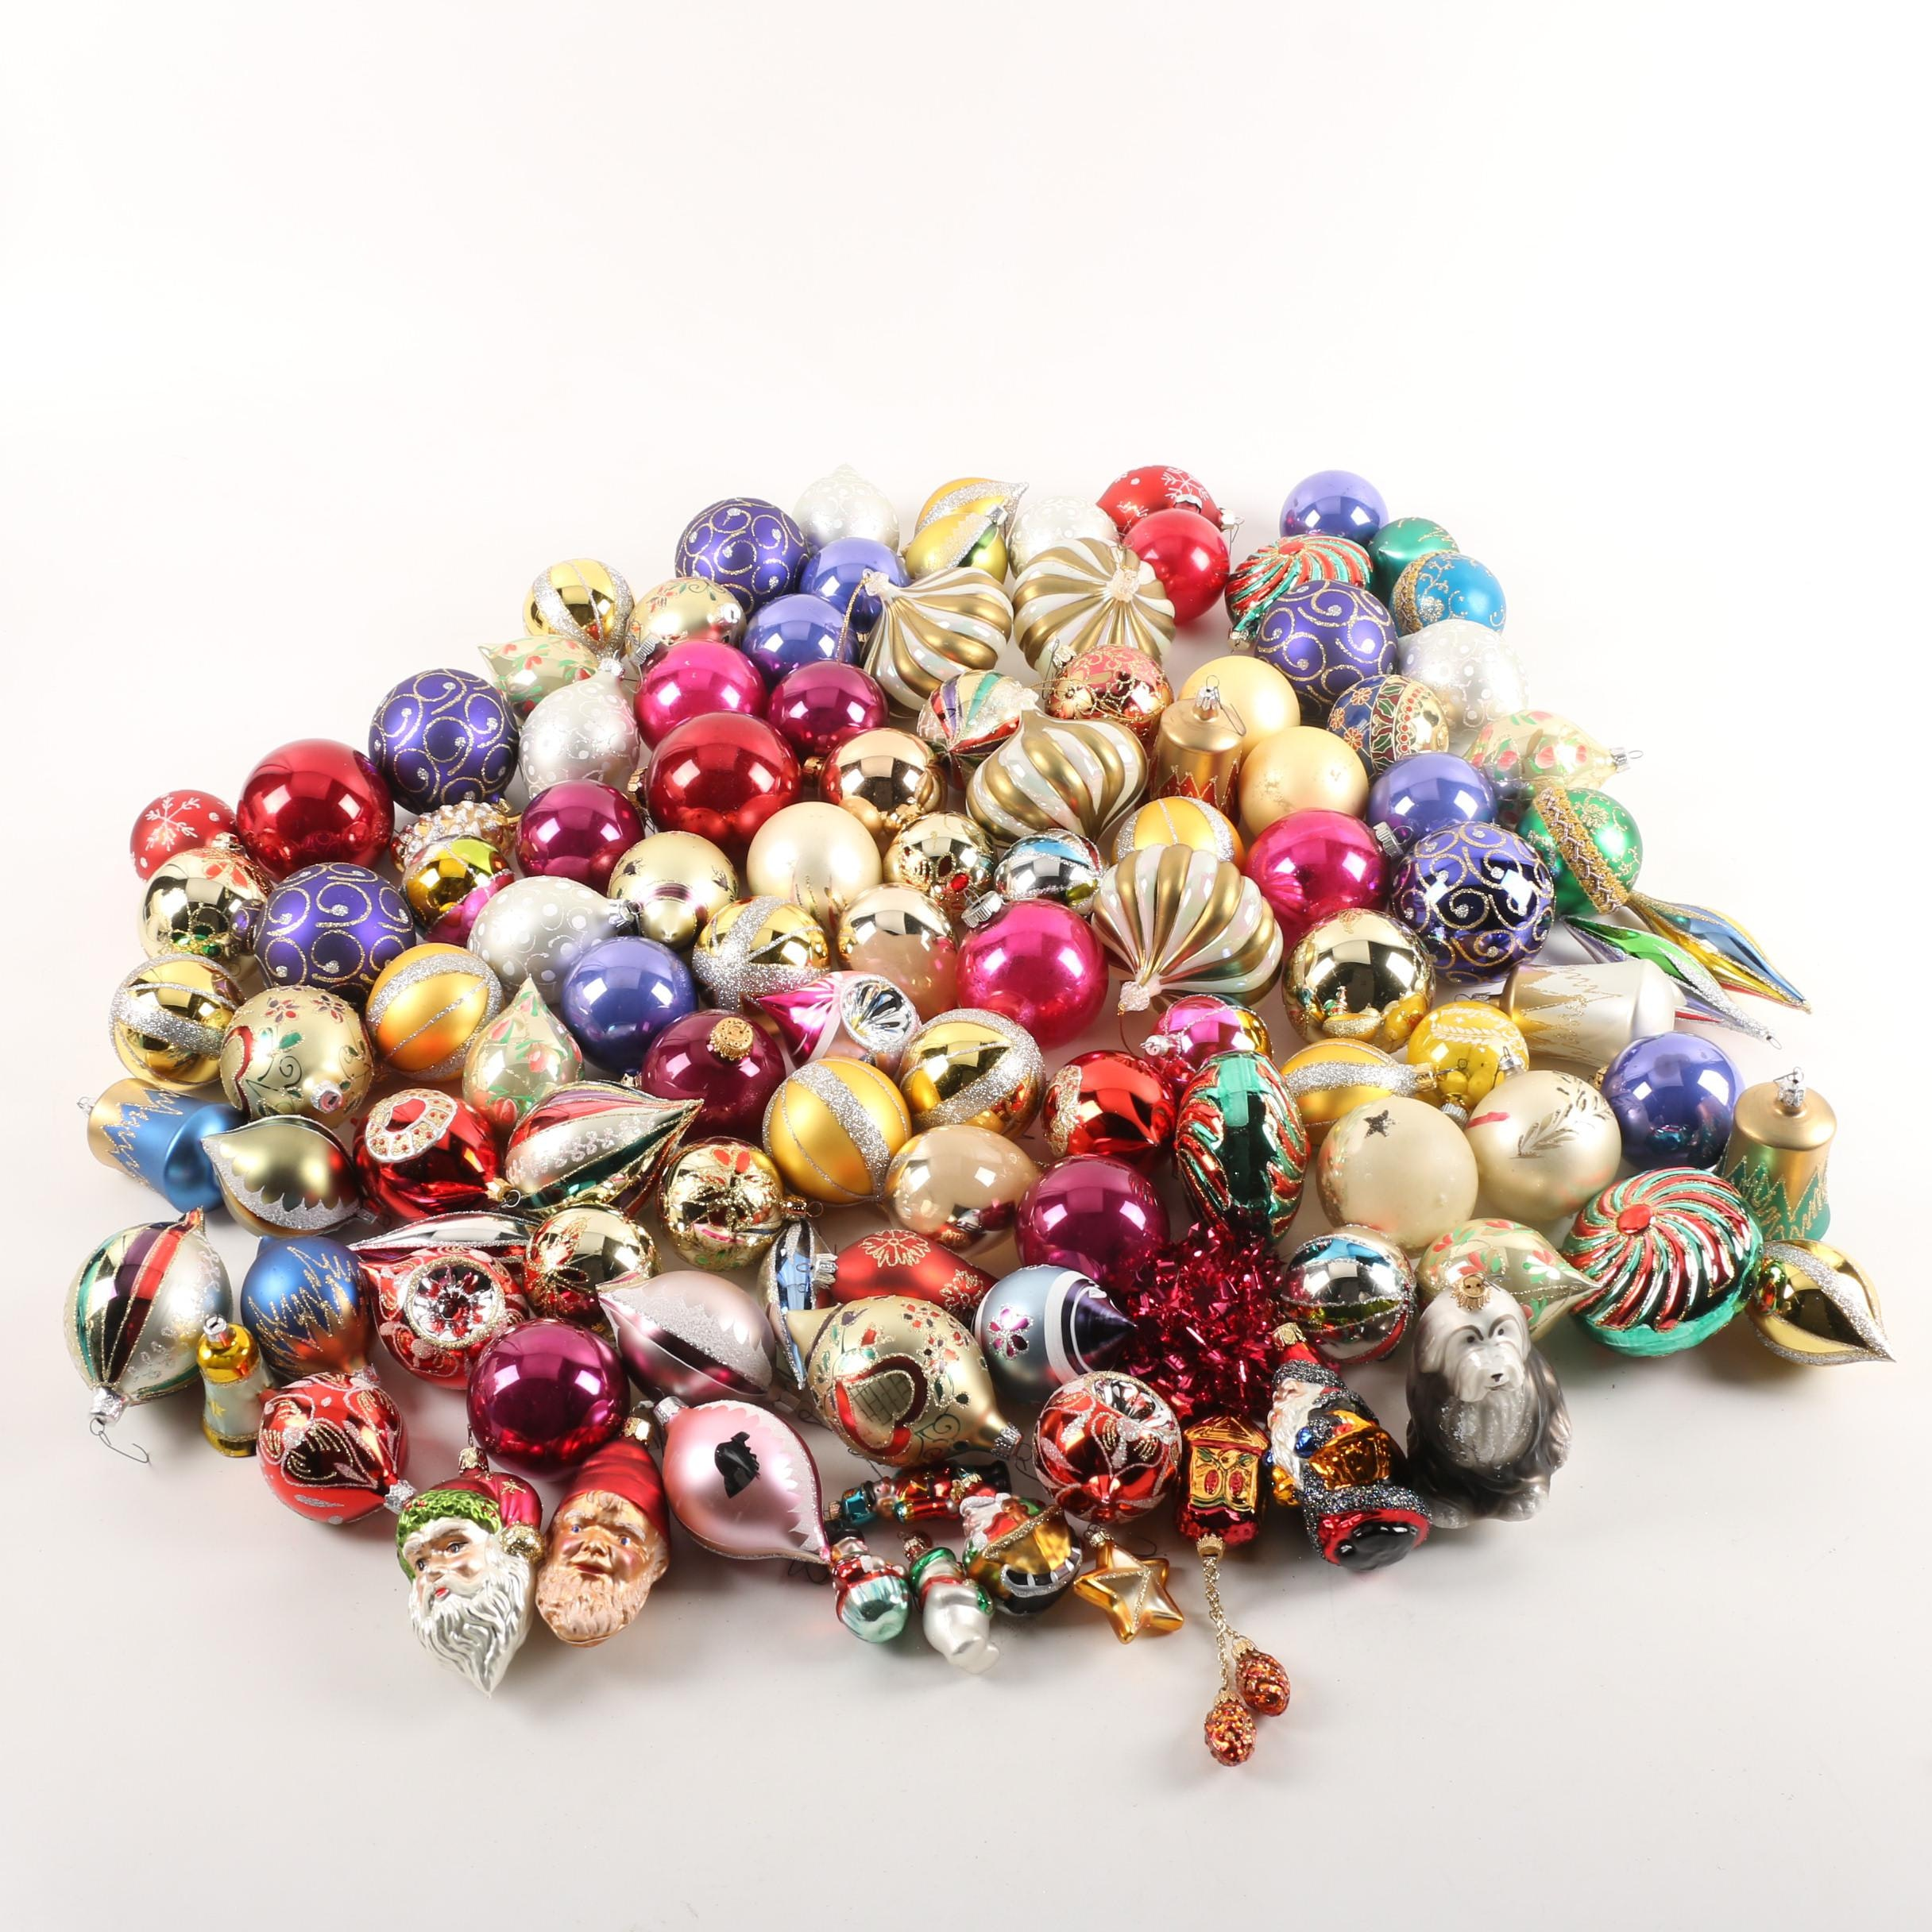 Vintage and Contemporary Glass Christmas Ball and Figural Ornaments